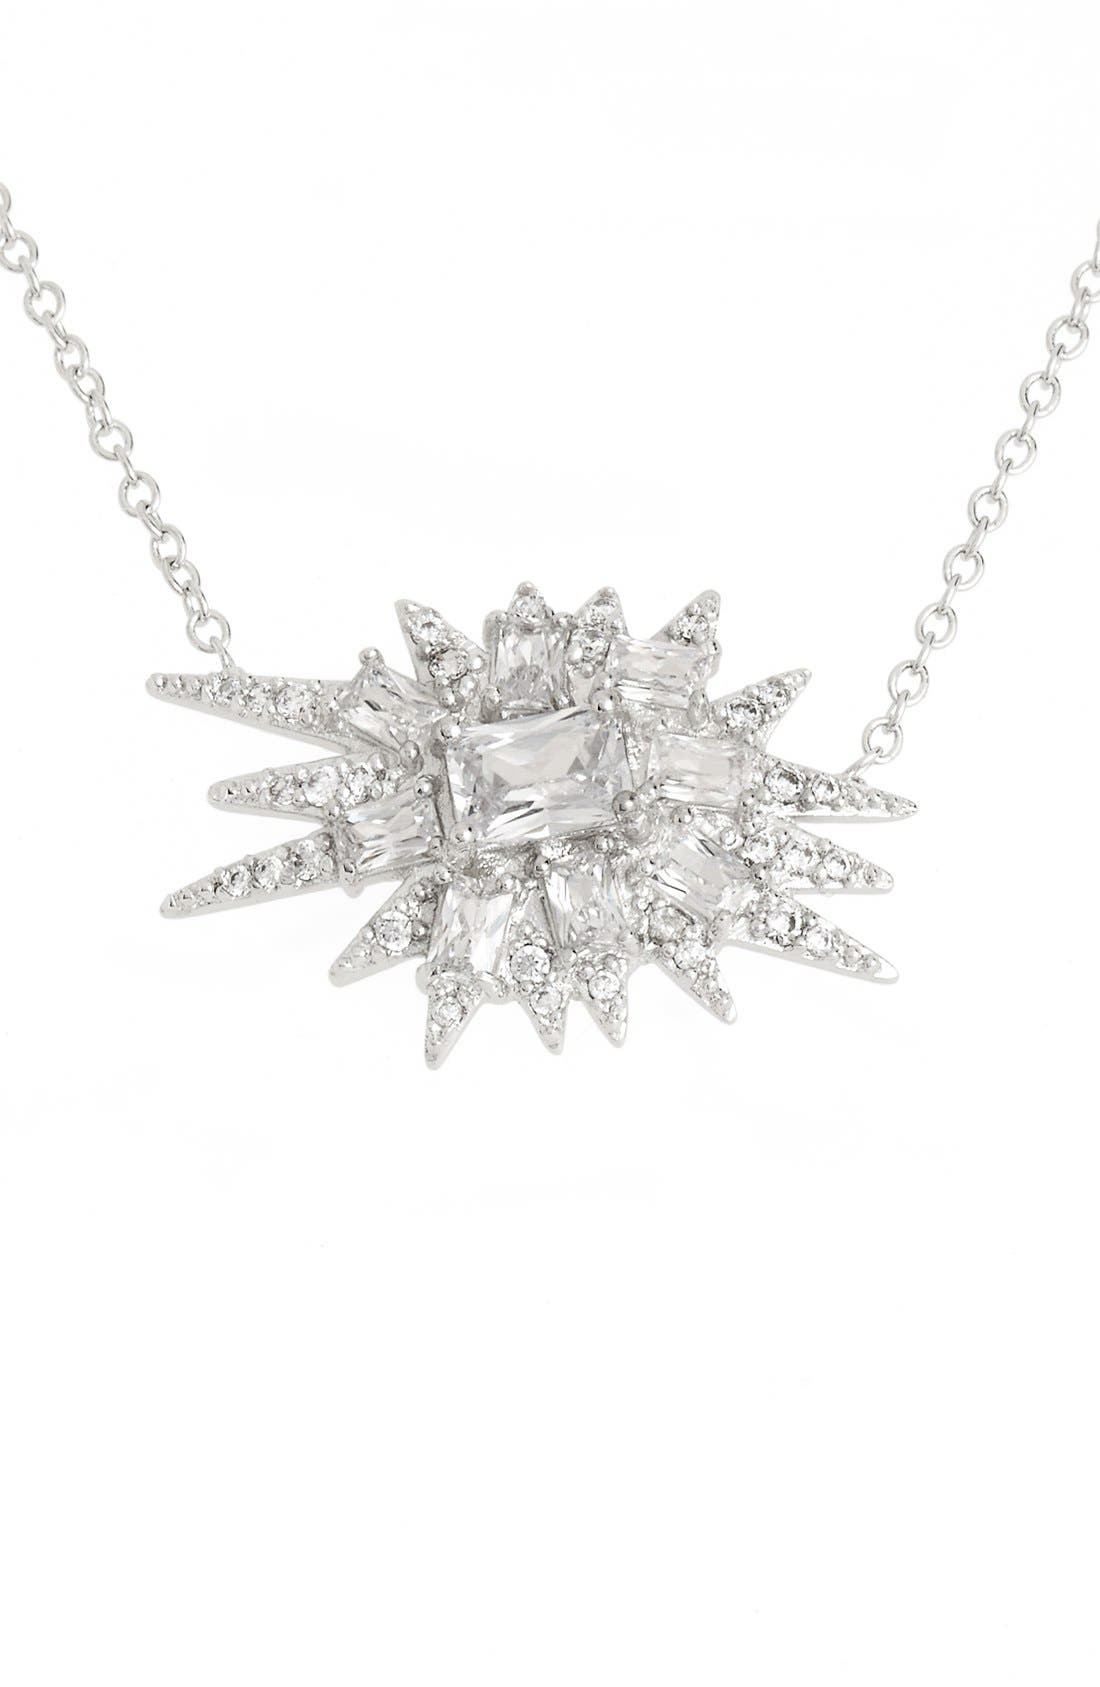 CZ by Kenneth Jay Lane 'Explosion' Cubic Zirconia Pendant Necklace